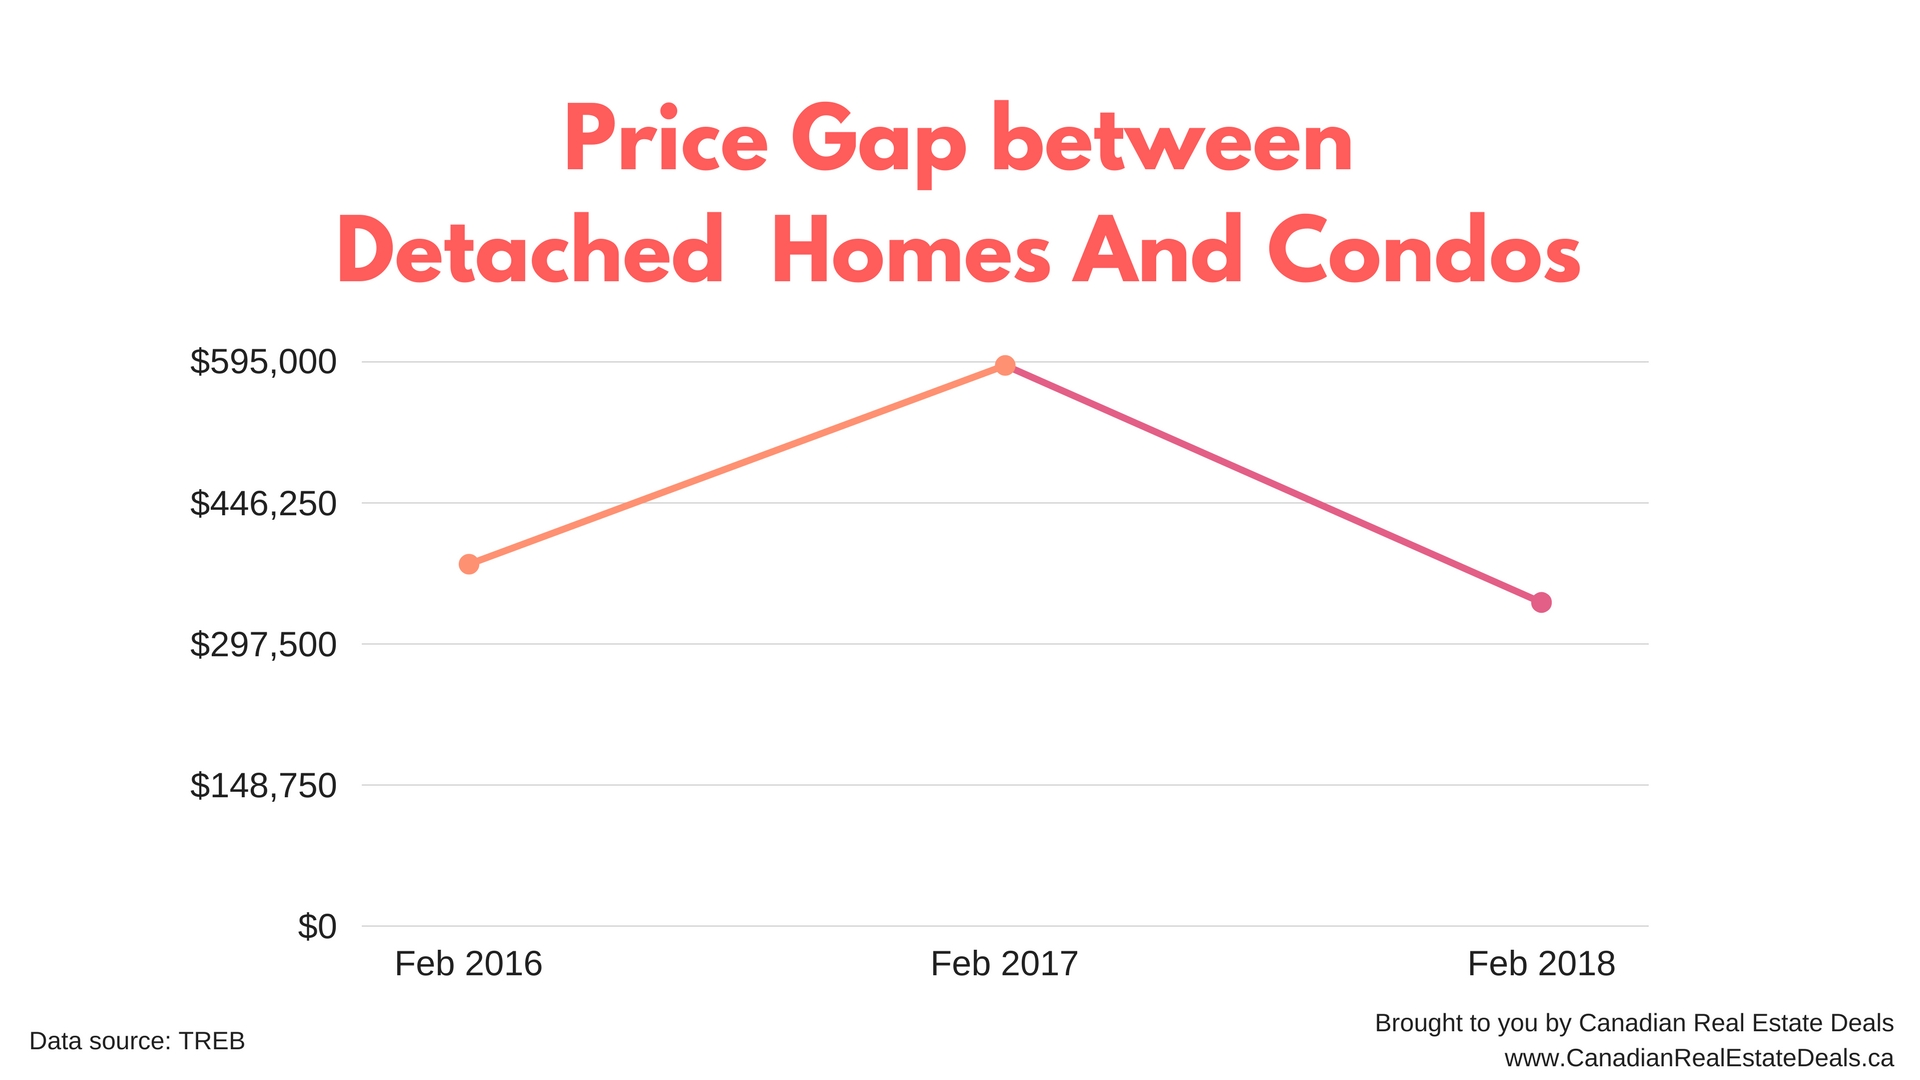 Price gap between detached homes and condos